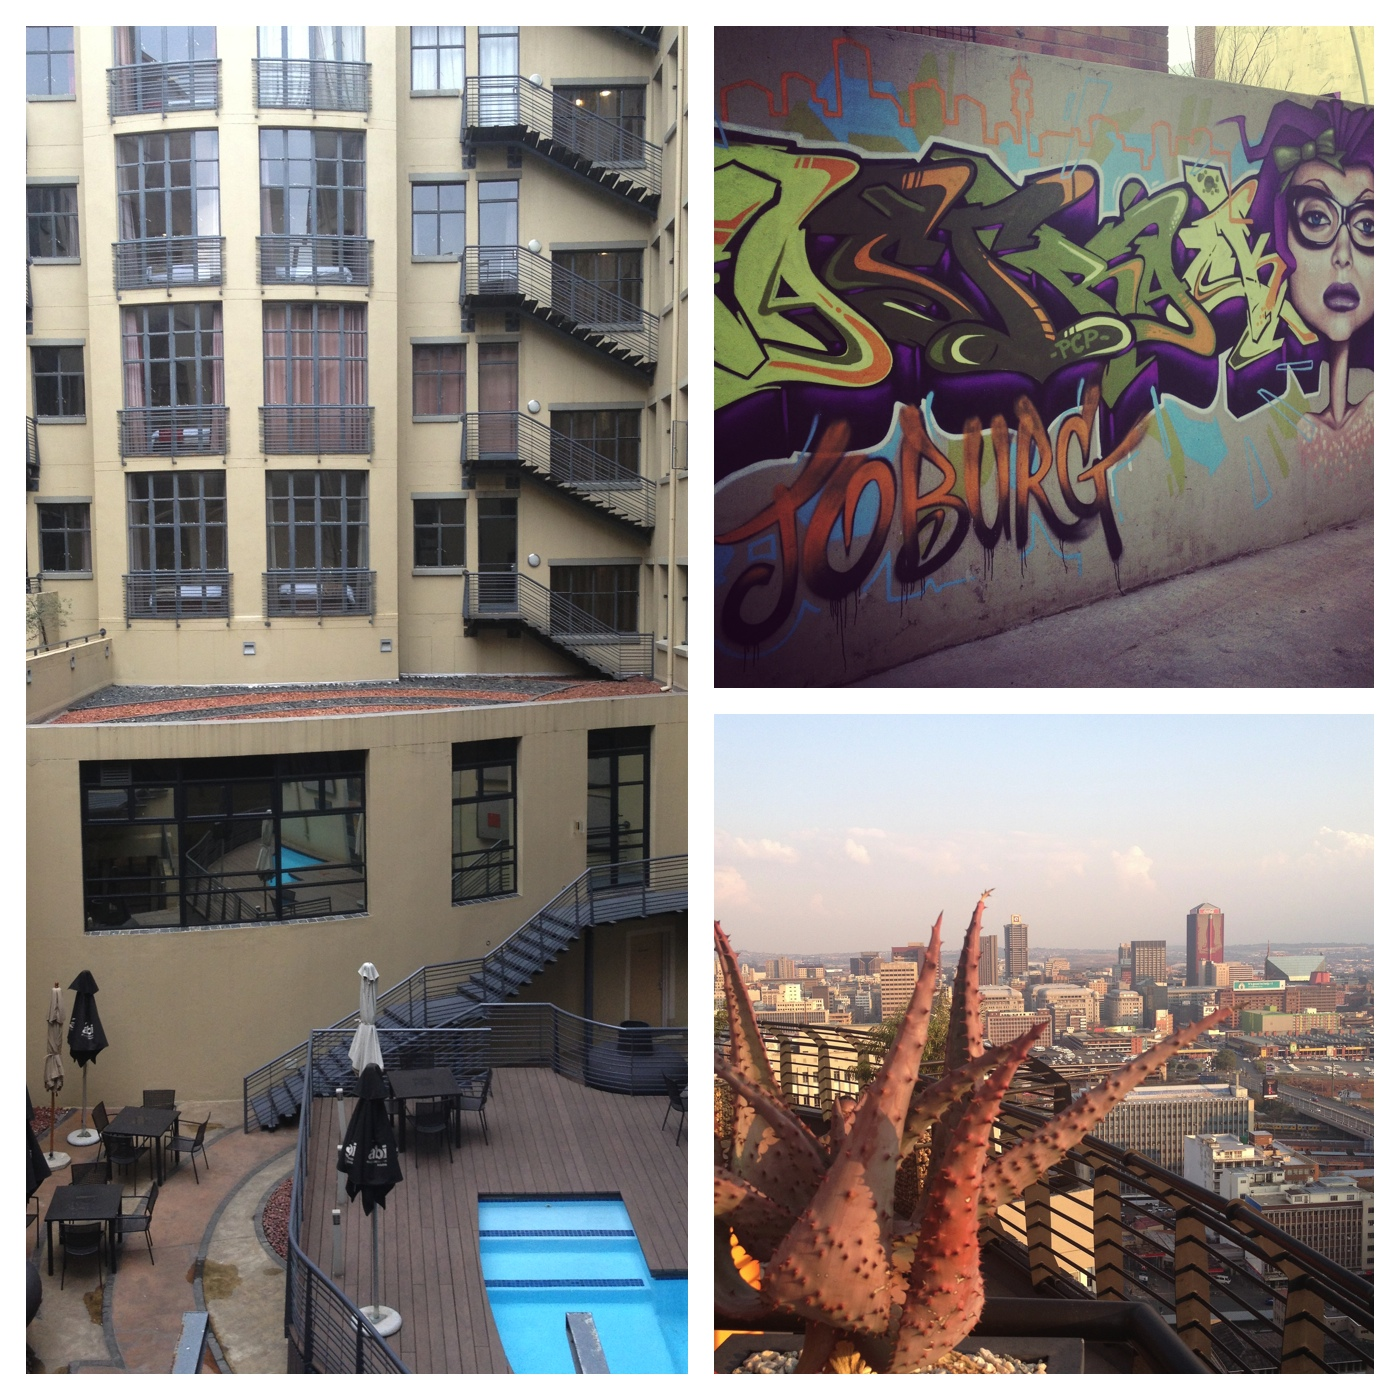 Impressions of Joburg - The Mapungubwe Hotel Courtyard, Grafitti at Fashion Kapitol and view from The Parktonian Hotel in Braamfontein